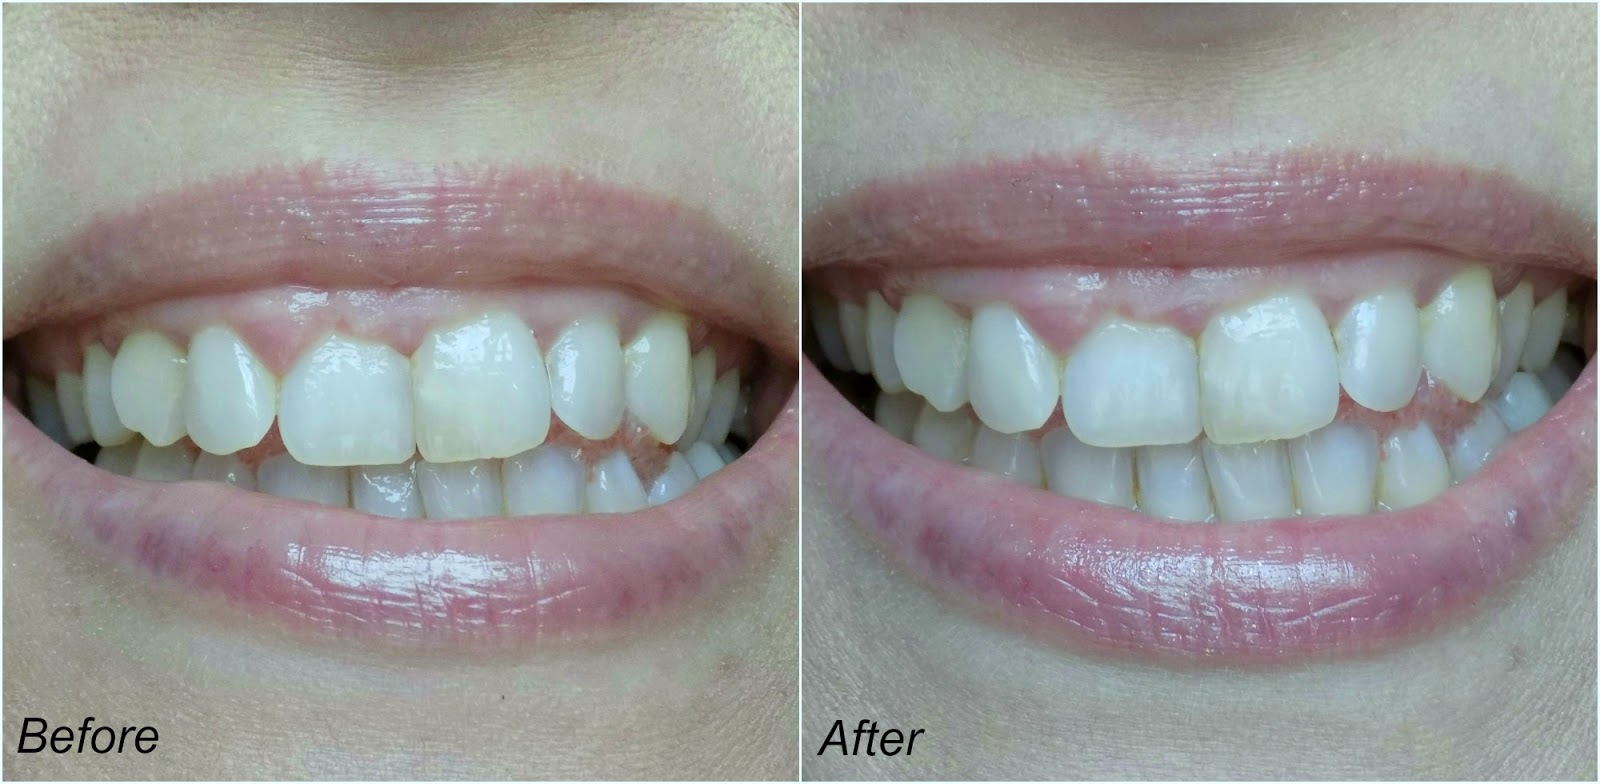 Whitewash Nano Whitening Regimen, before and after photos